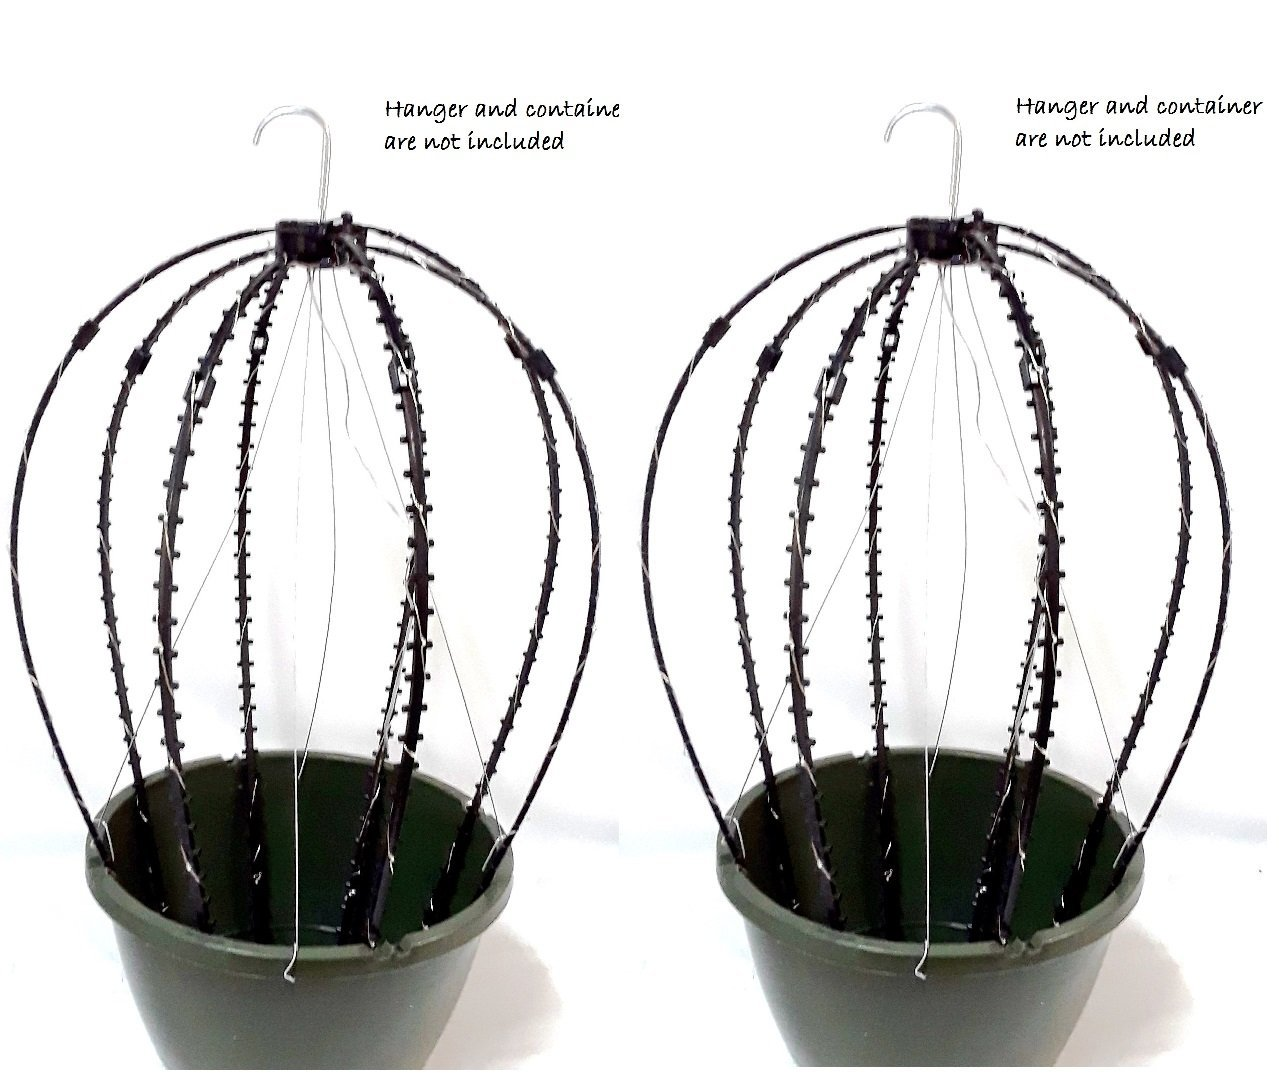 Scroll Trellis Trellis for hanging basket to support vines and/or string lights (2, Black with Lights)